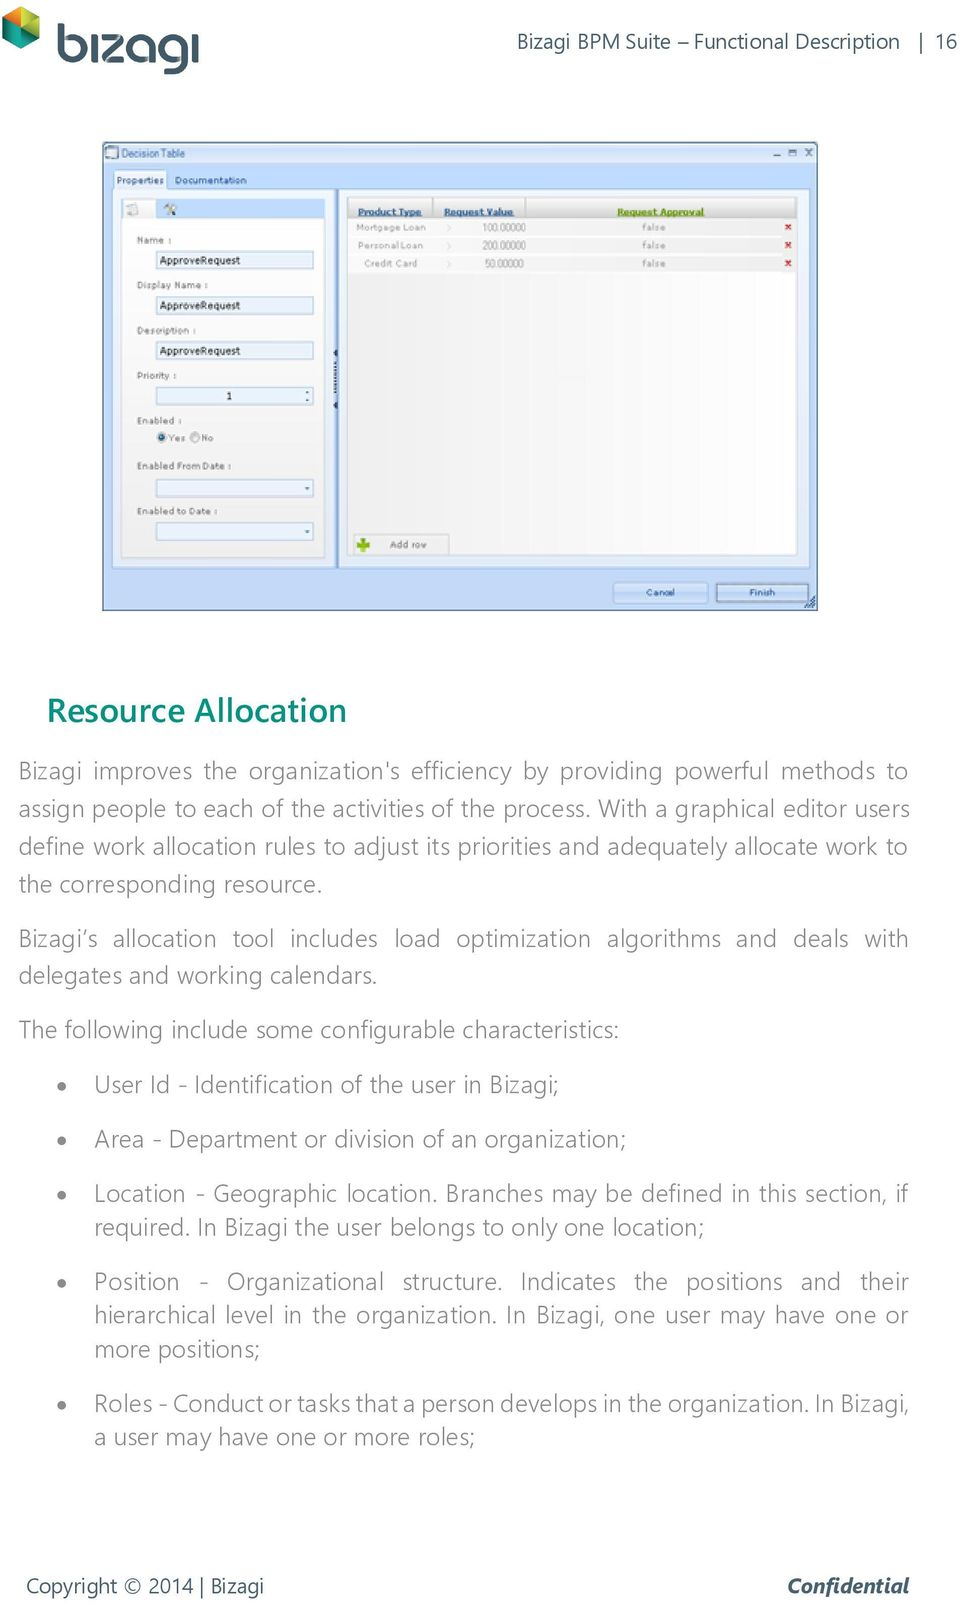 Bizagi s allocation tool includes load optimization algorithms and deals with delegates and working calendars.